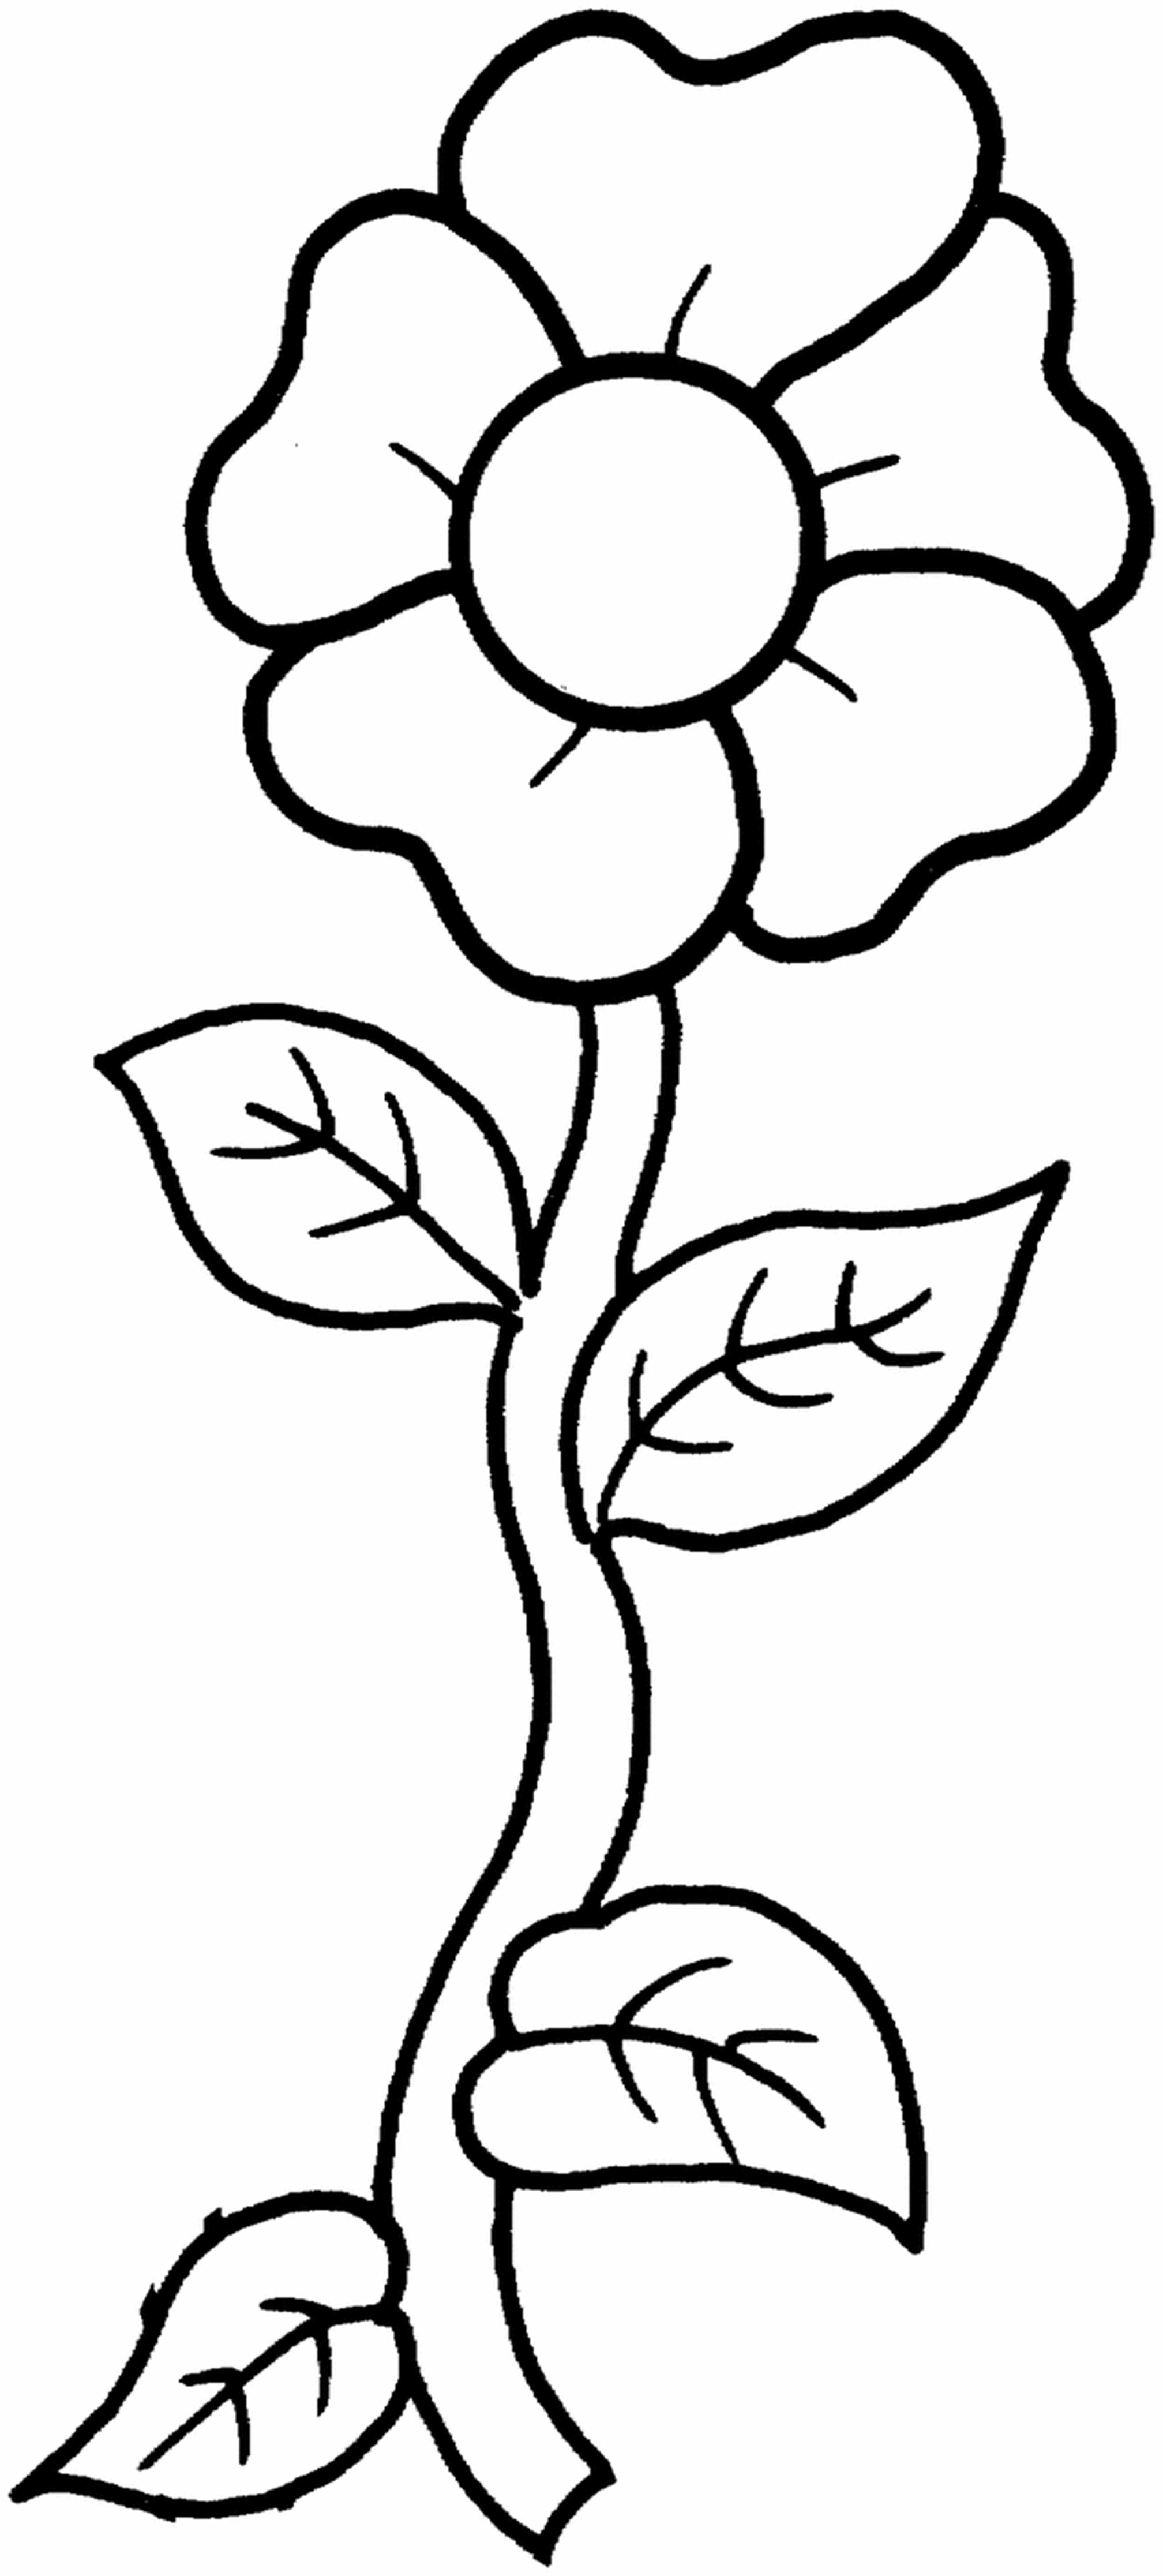 flower coloring sheets free free printable flower coloring pages for kids best free sheets coloring flower